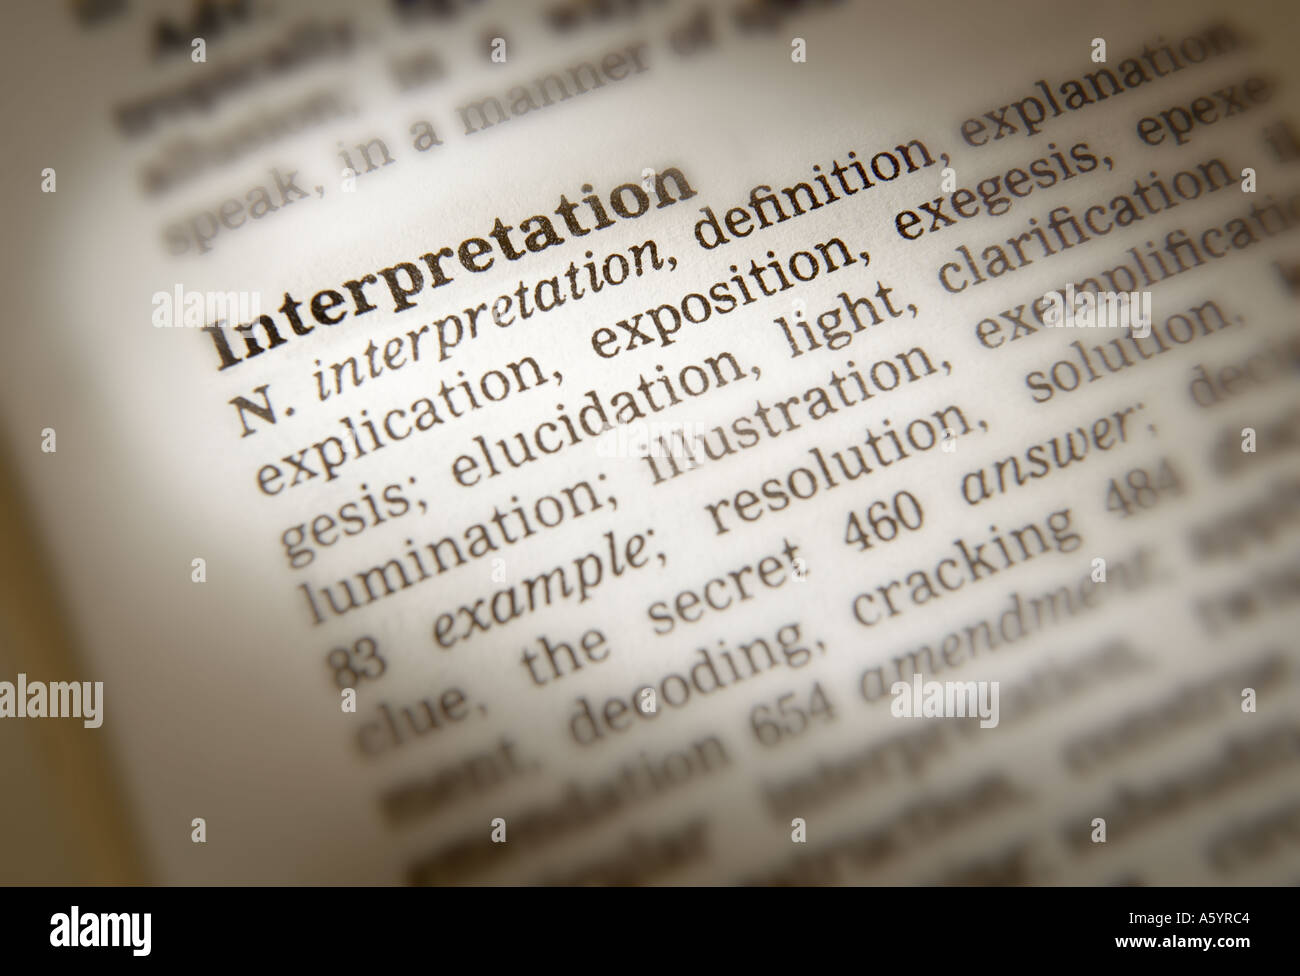 THESAURUS PAGE SHOWING DEFINTION OF WORD INTERPRETATION